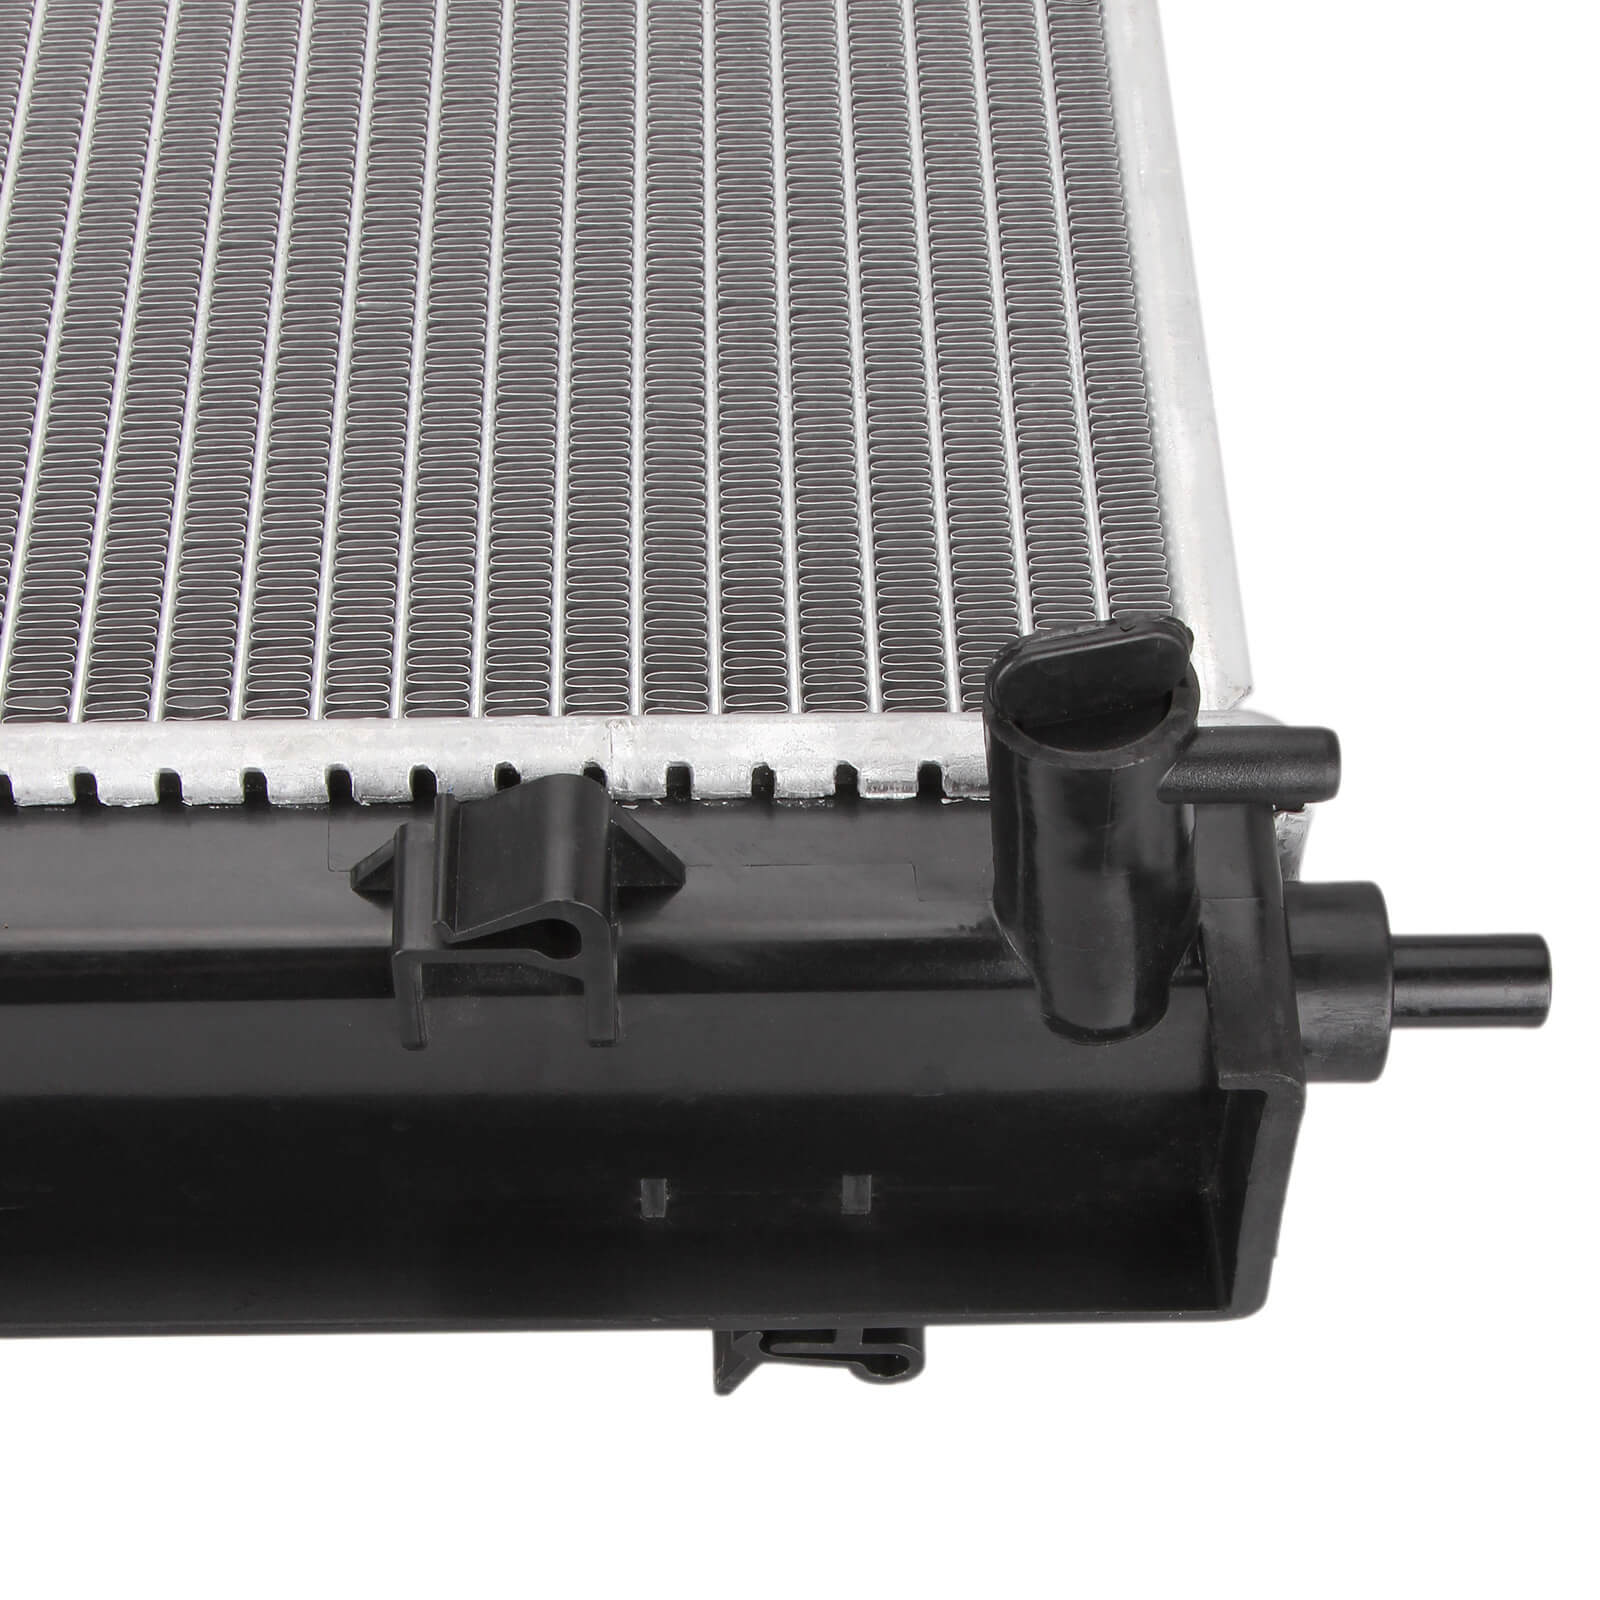 Dromedary-High Quality New 2688 Full Aluminum Radiator For Lexus Rx 330 33-202-v6-6